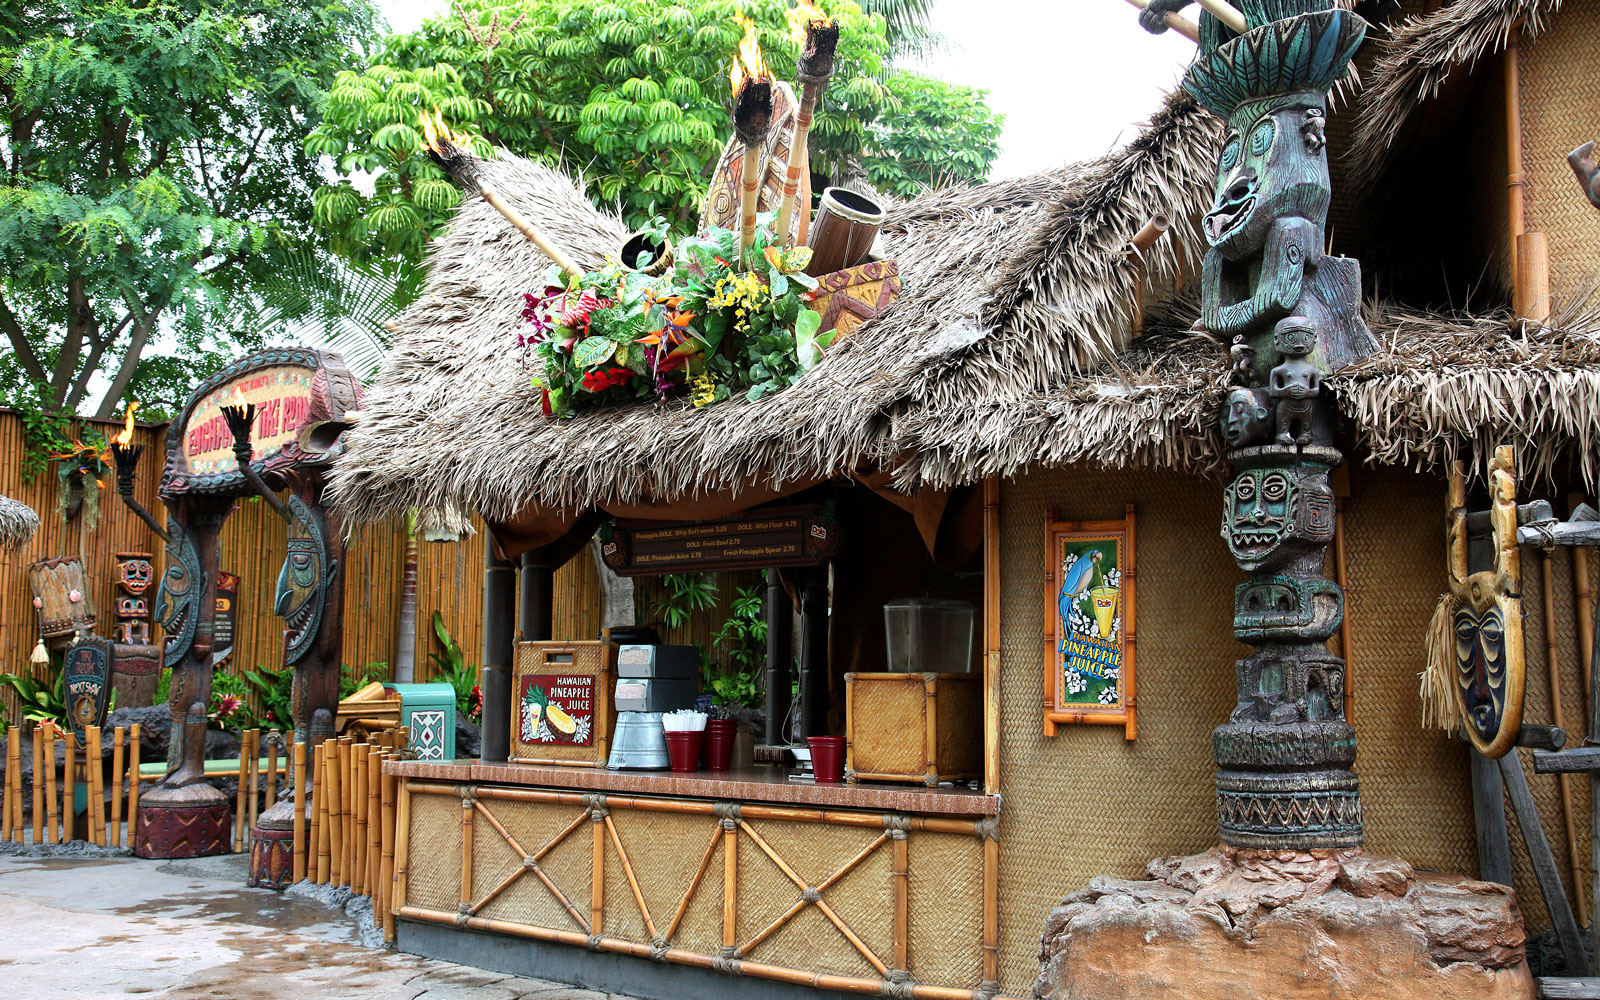 Enchanted Tiki Room, Adventureland, Disneyland